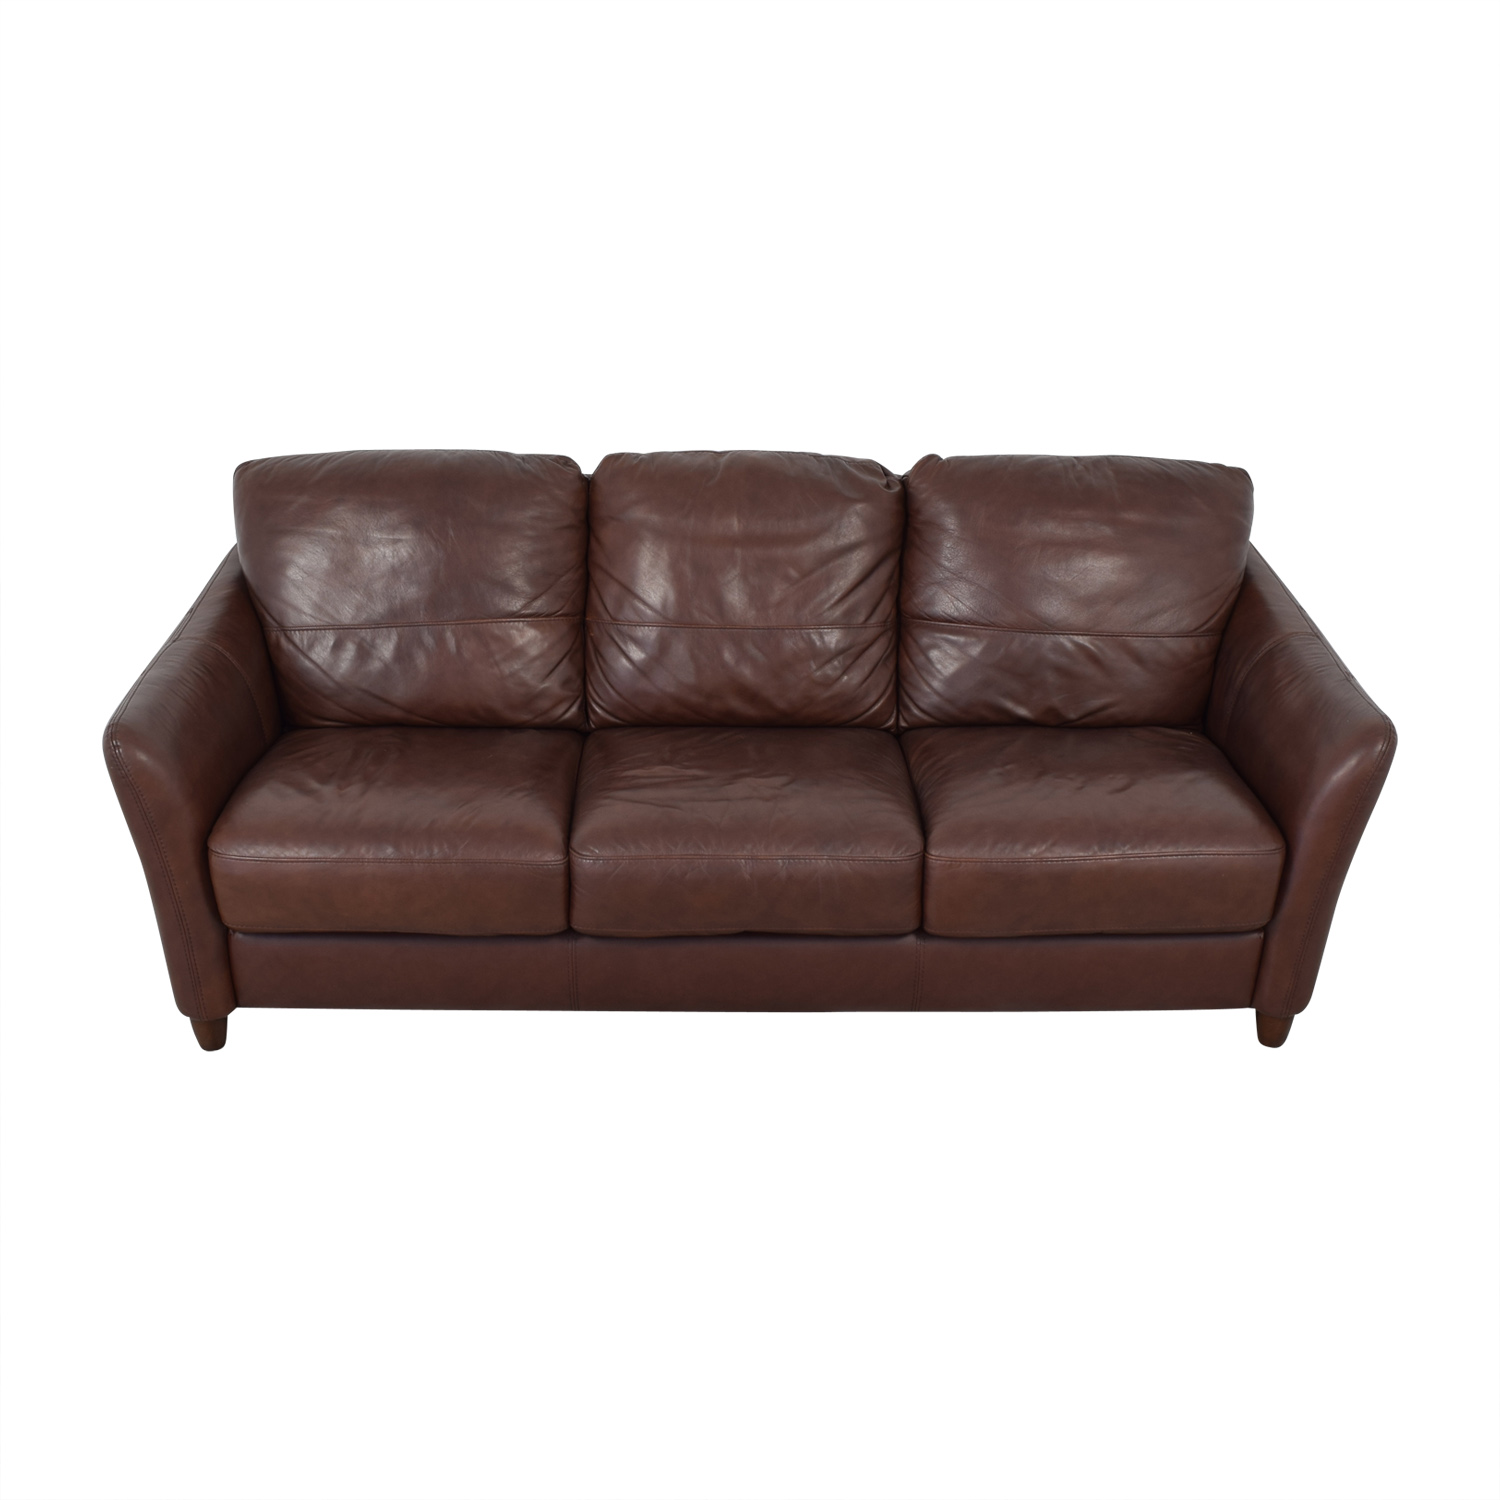 Groovy 58 Off Raymour Flanigan Raymour Flanigan Leather Sofa Sofas Ibusinesslaw Wood Chair Design Ideas Ibusinesslaworg